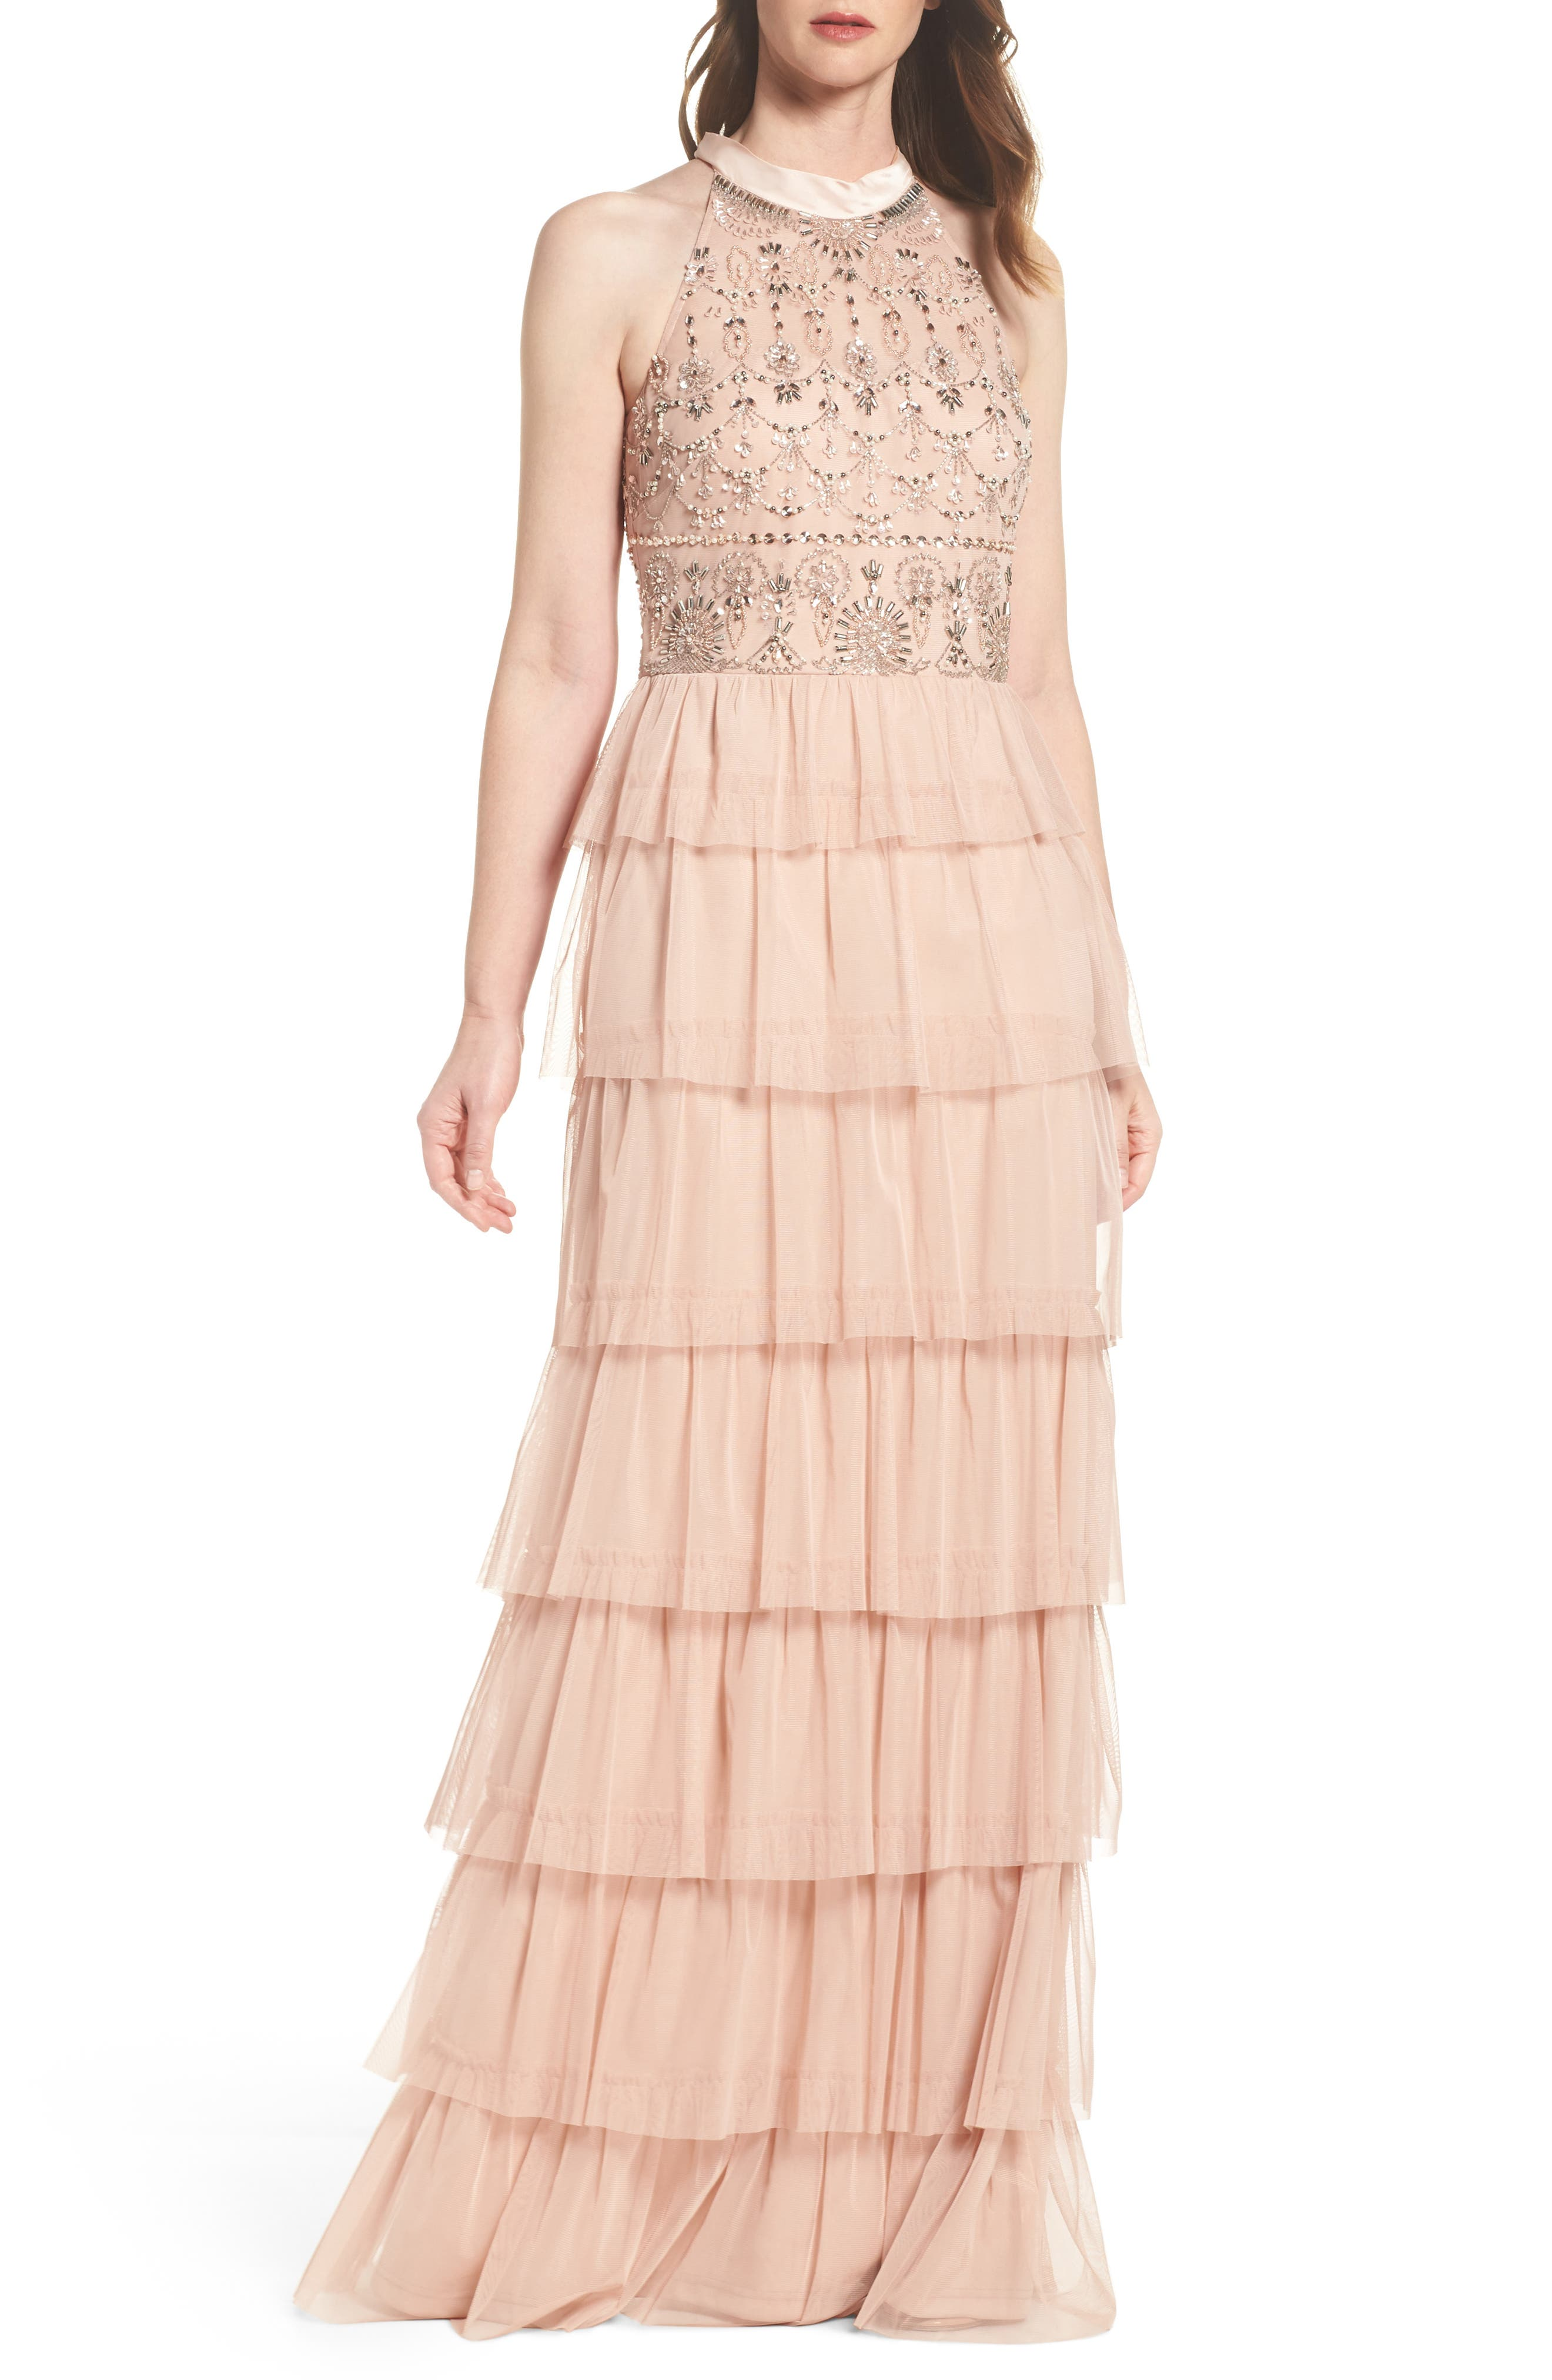 Embellished Tiered Maxi Dress,                         Main,                         color, Blush